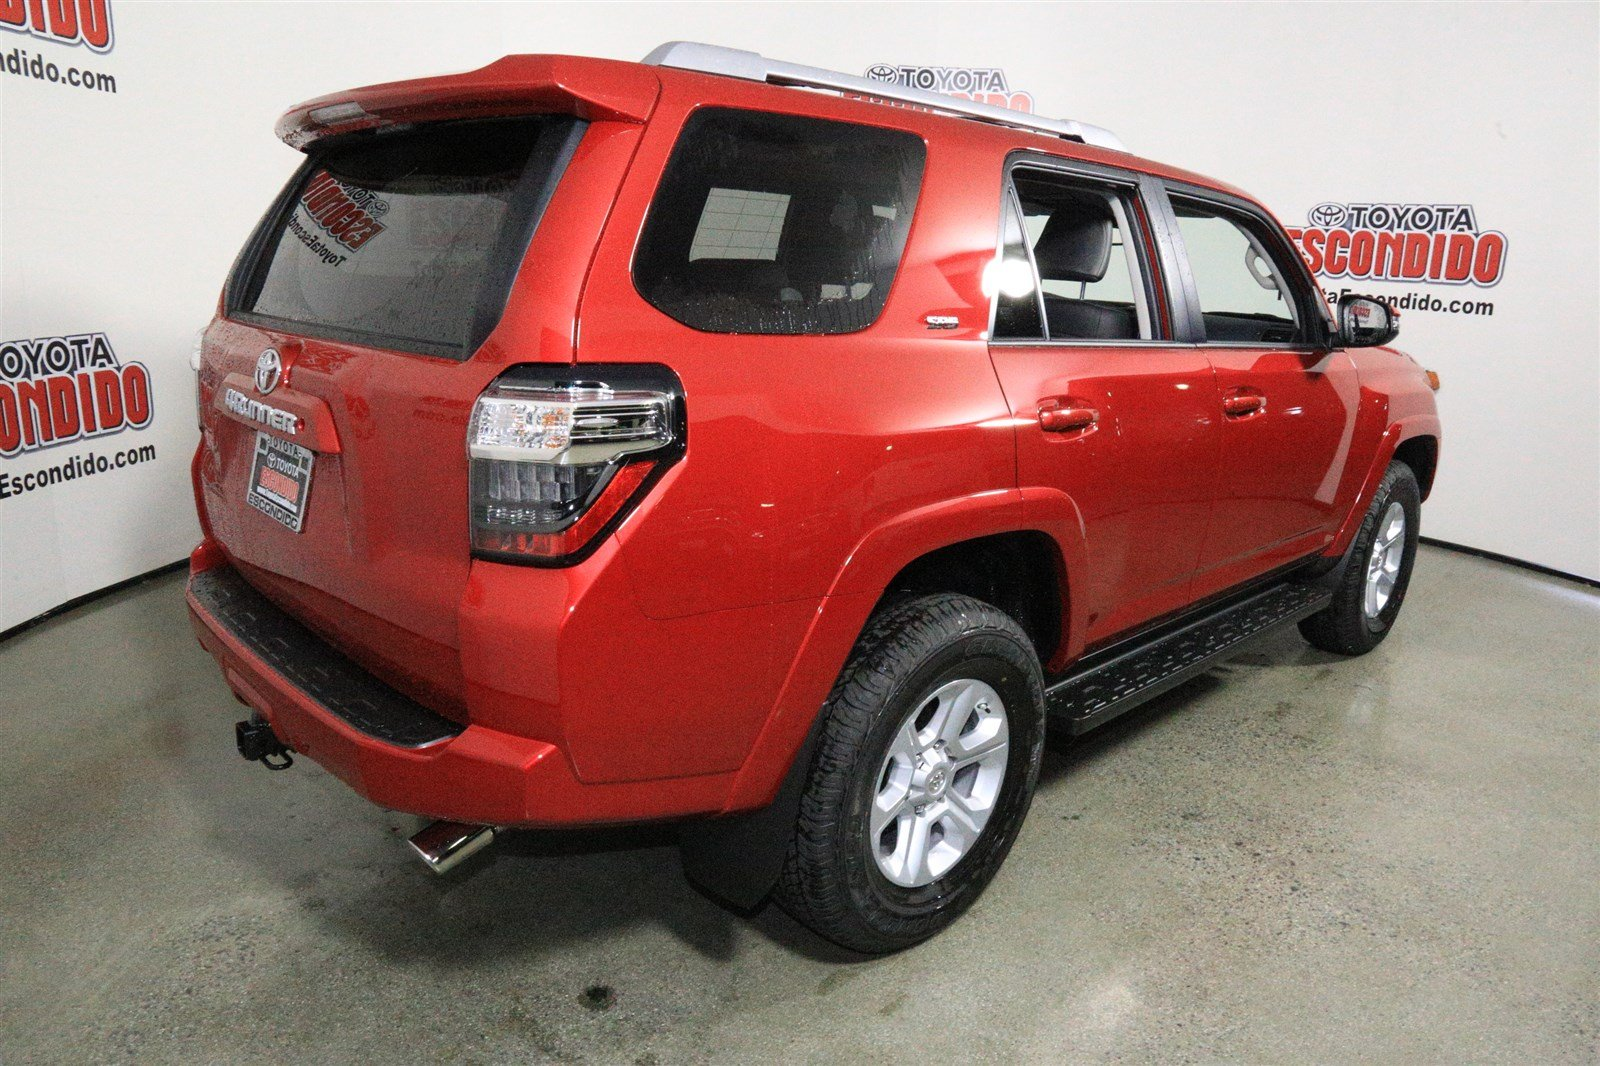 new 2017 toyota 4runner sr5 premium sport utility in escondido h5466419 toyota escondido. Black Bedroom Furniture Sets. Home Design Ideas